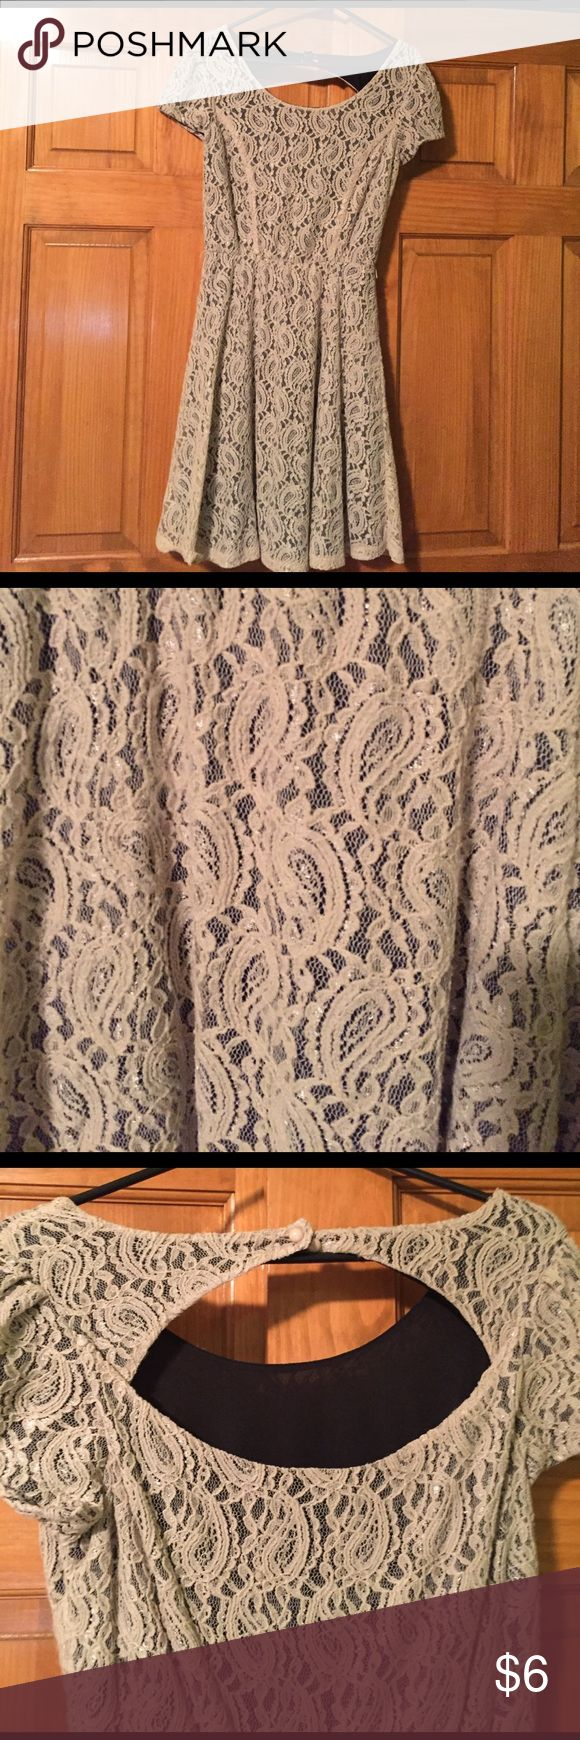 Tan lace dress lined in black Great condition.   No longer have belt but would not have to have.  Purchased at Maurice's.  Size medium Dresses Mini